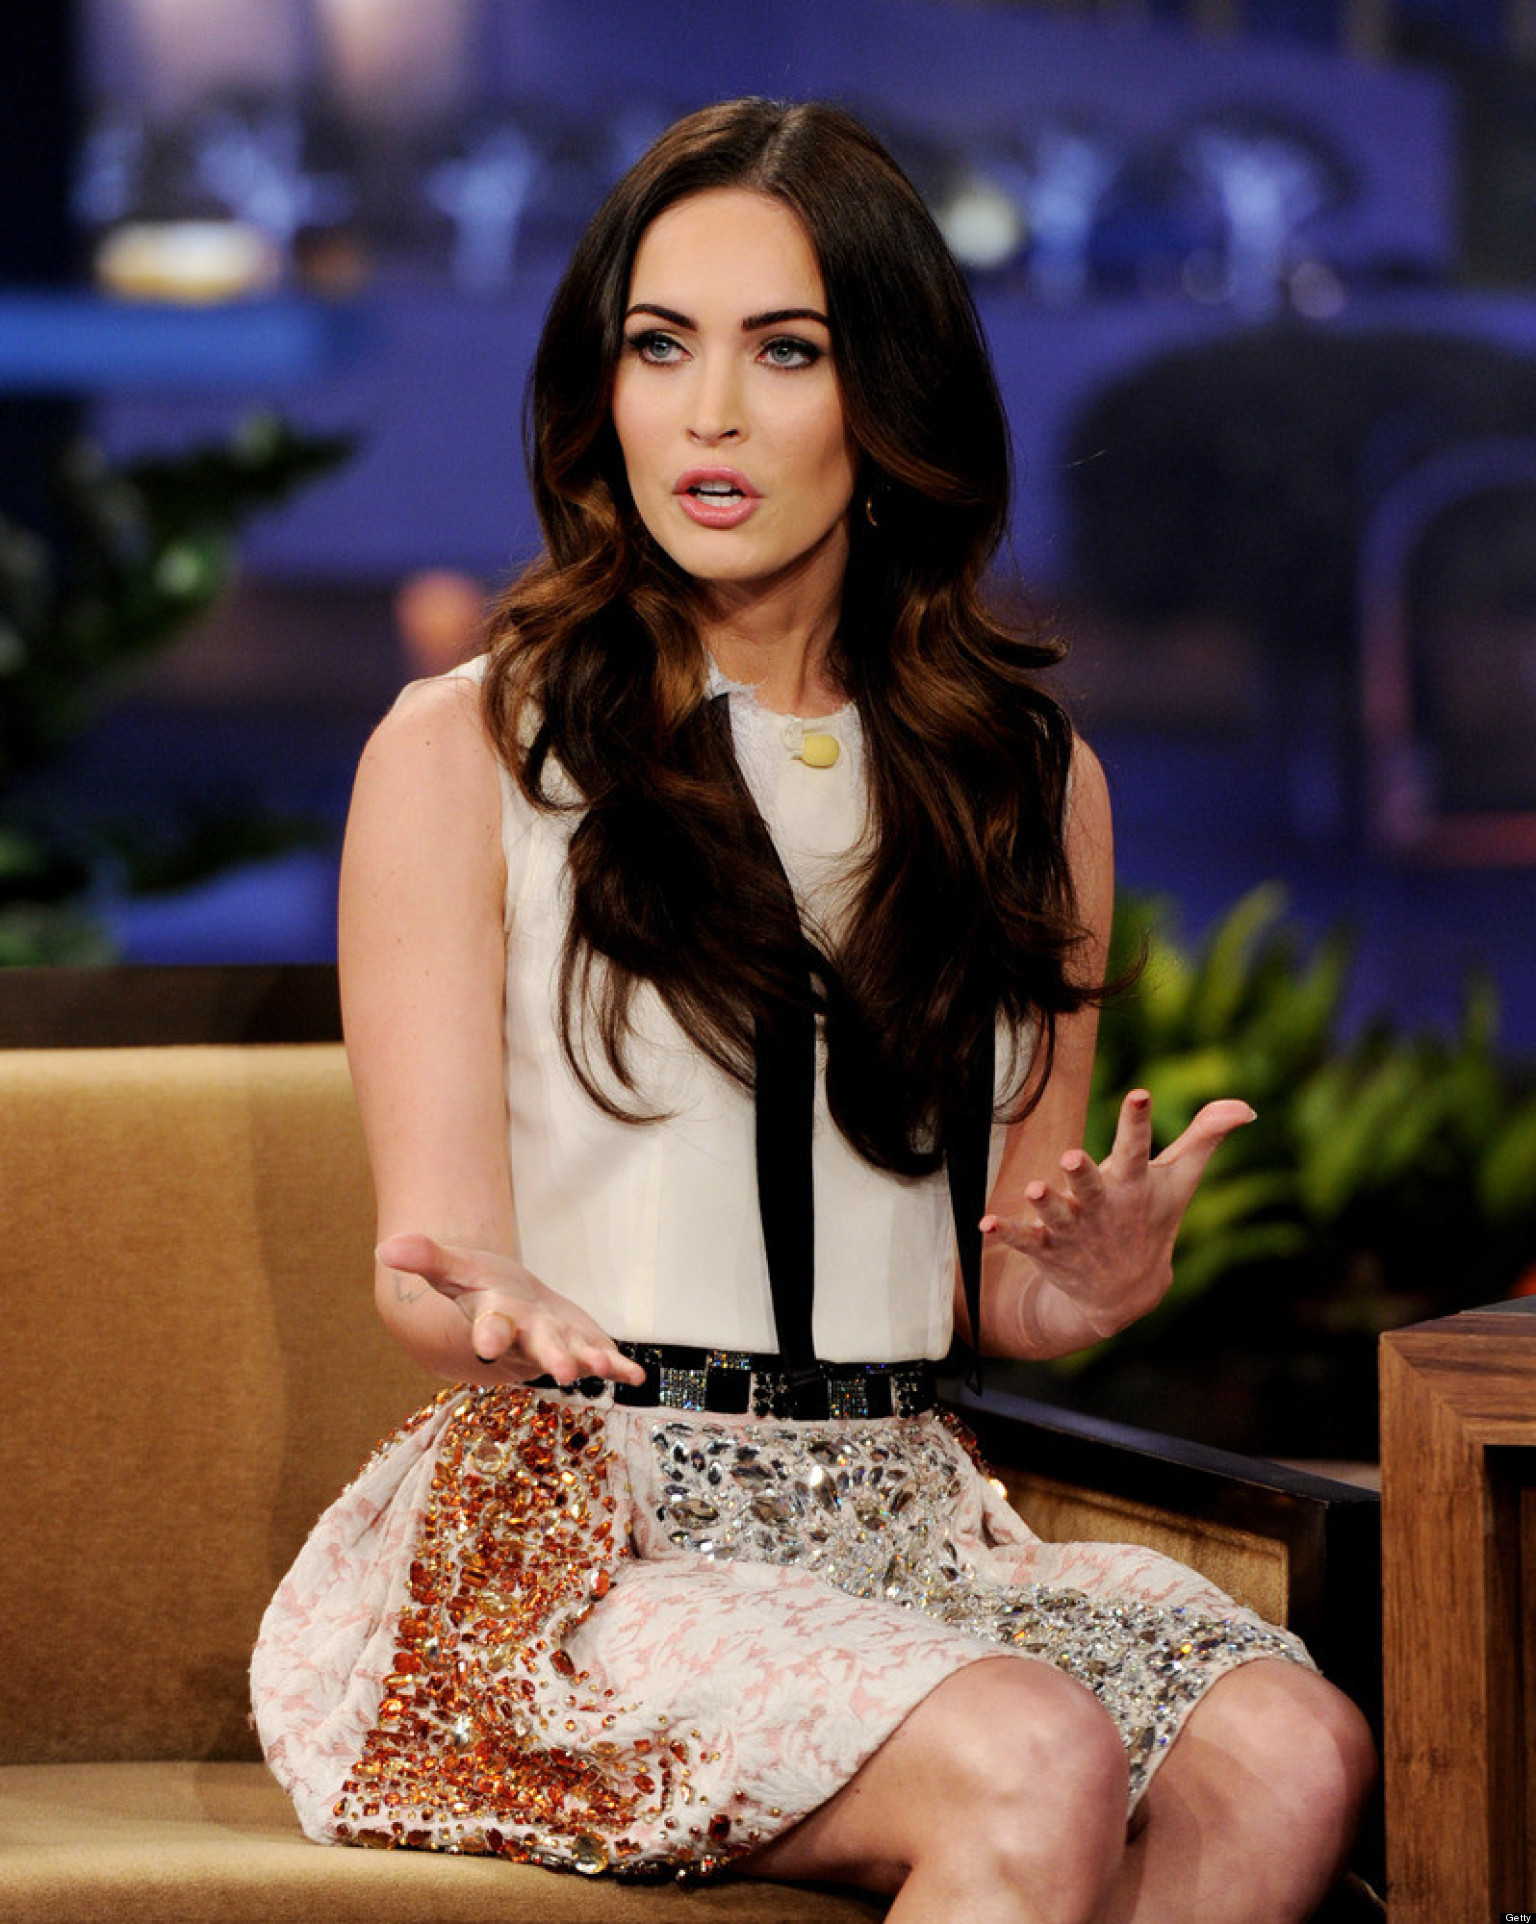 9 Celebrity Confessions Of Poor Hygiene (PHOTOS) | HuffPost